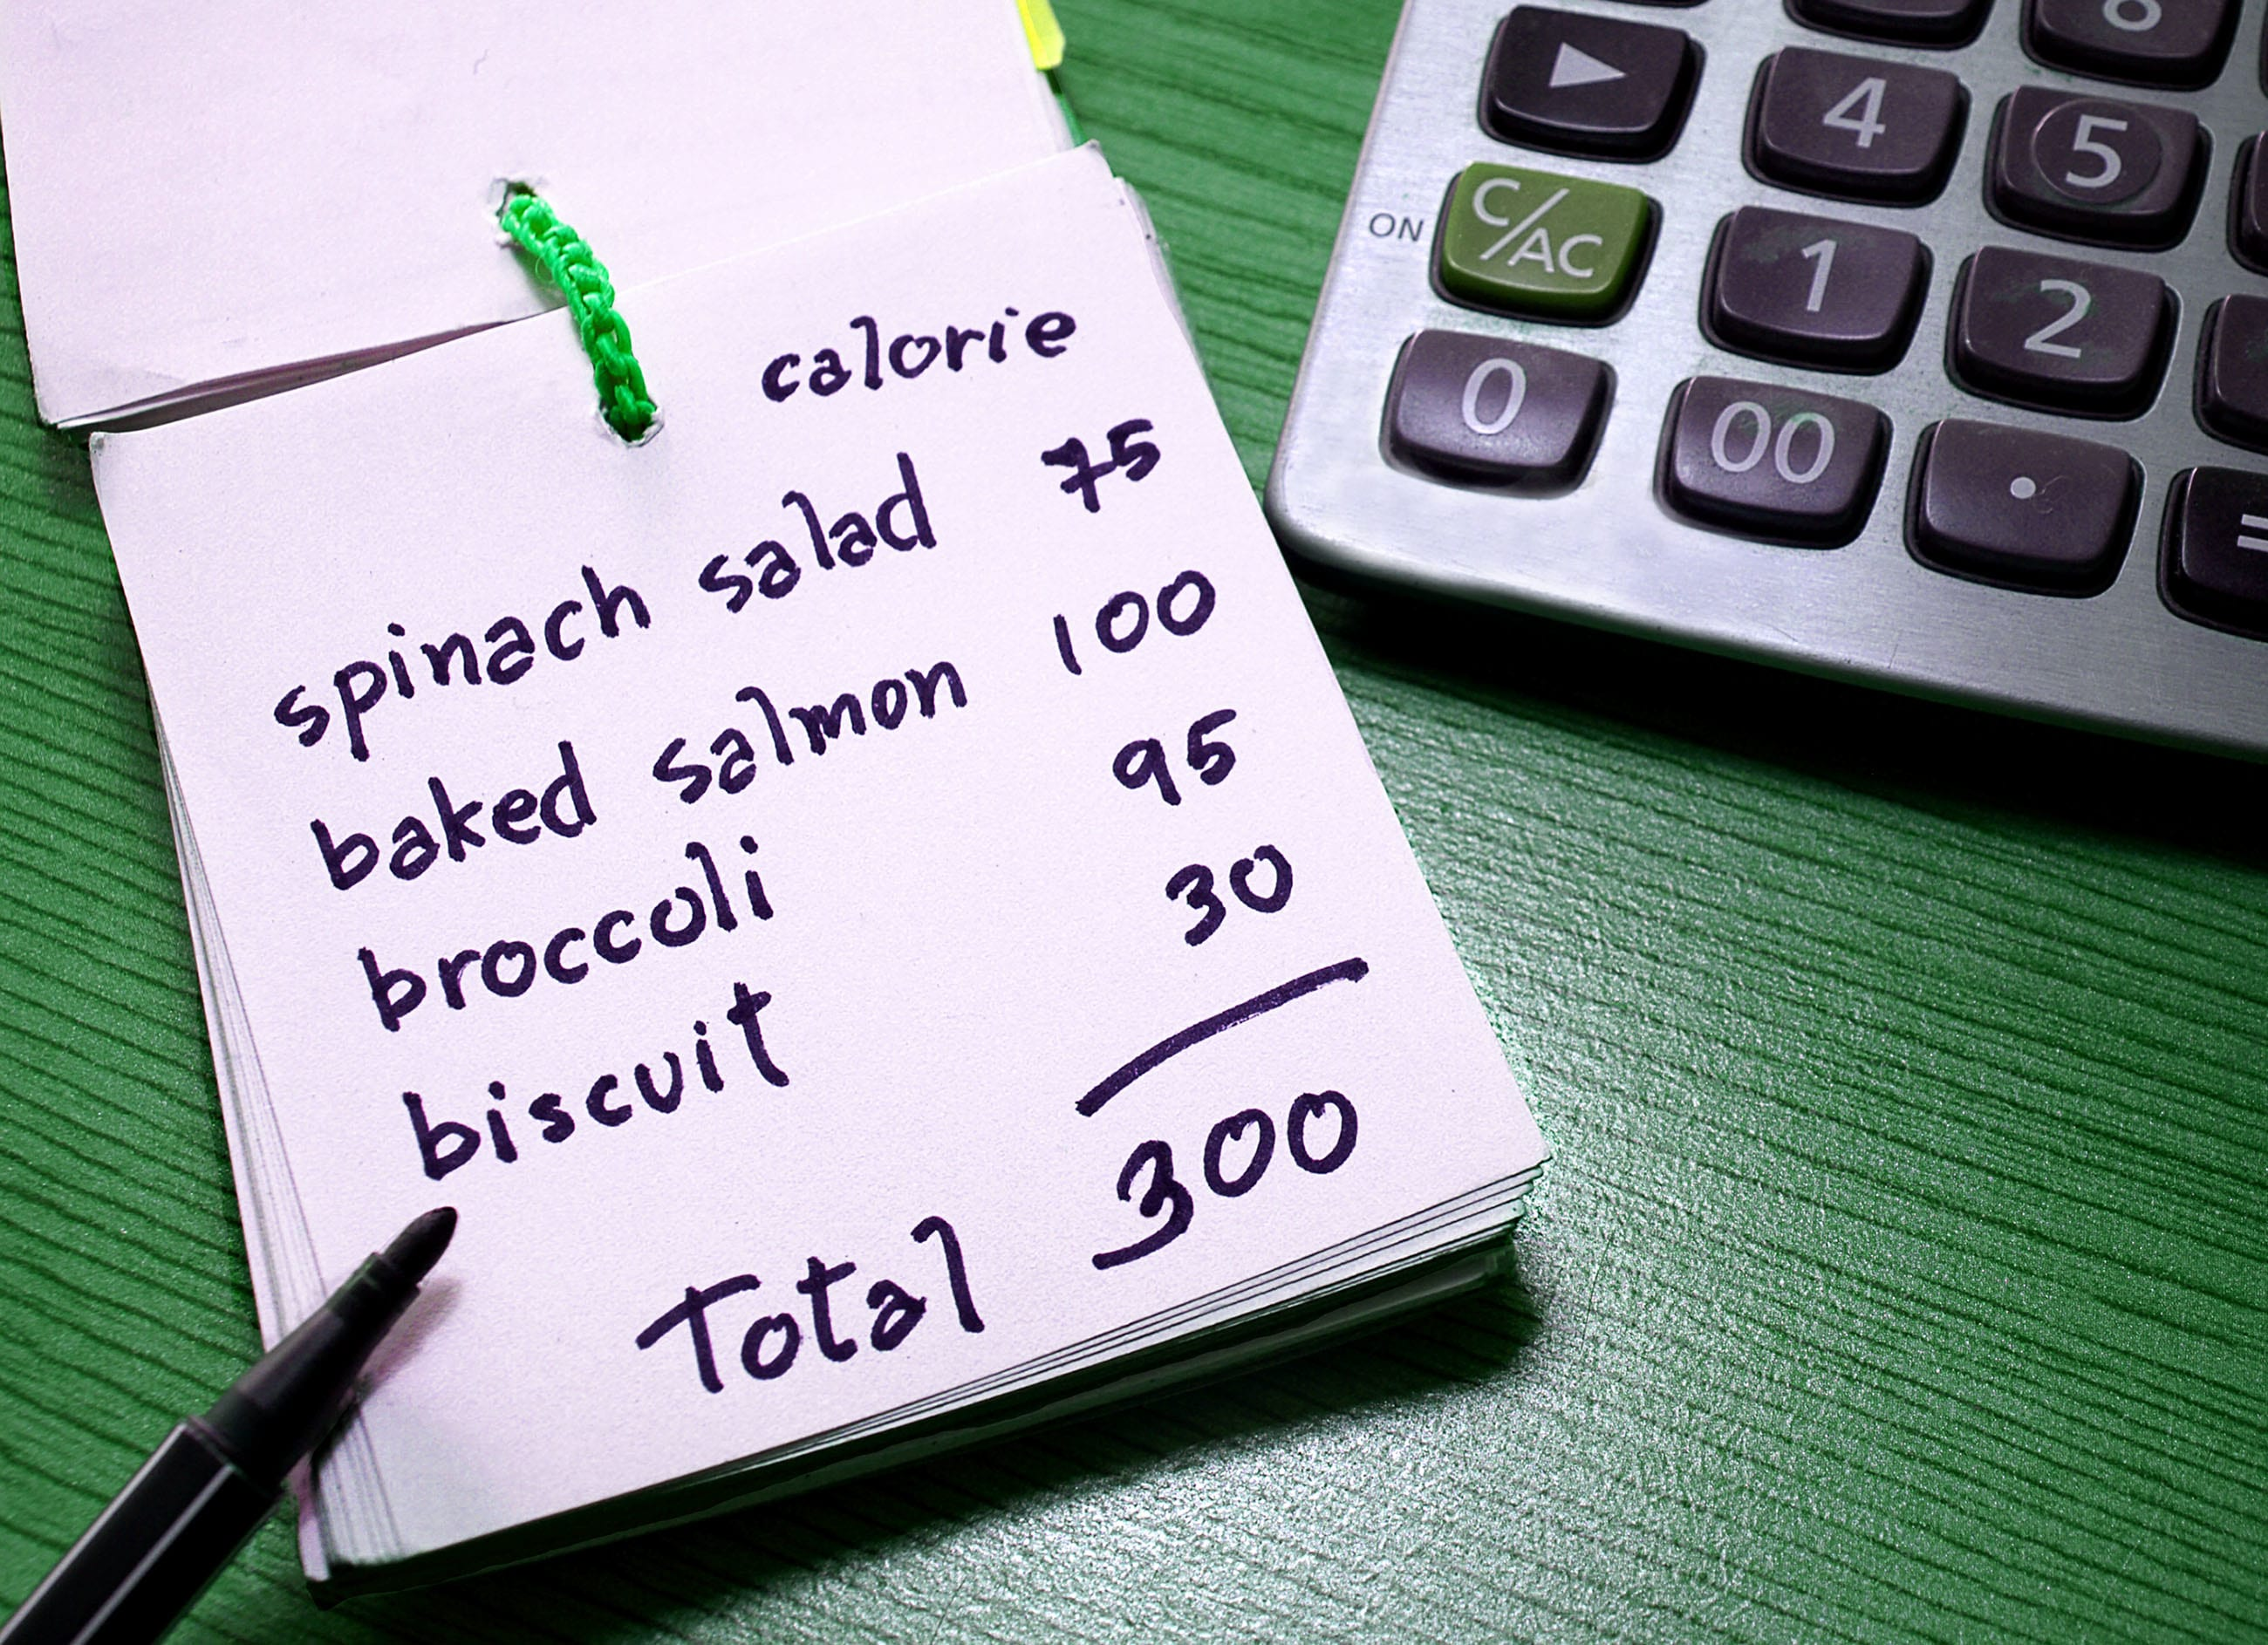 calorie counting - Diet, Exercise, and Weight Loss